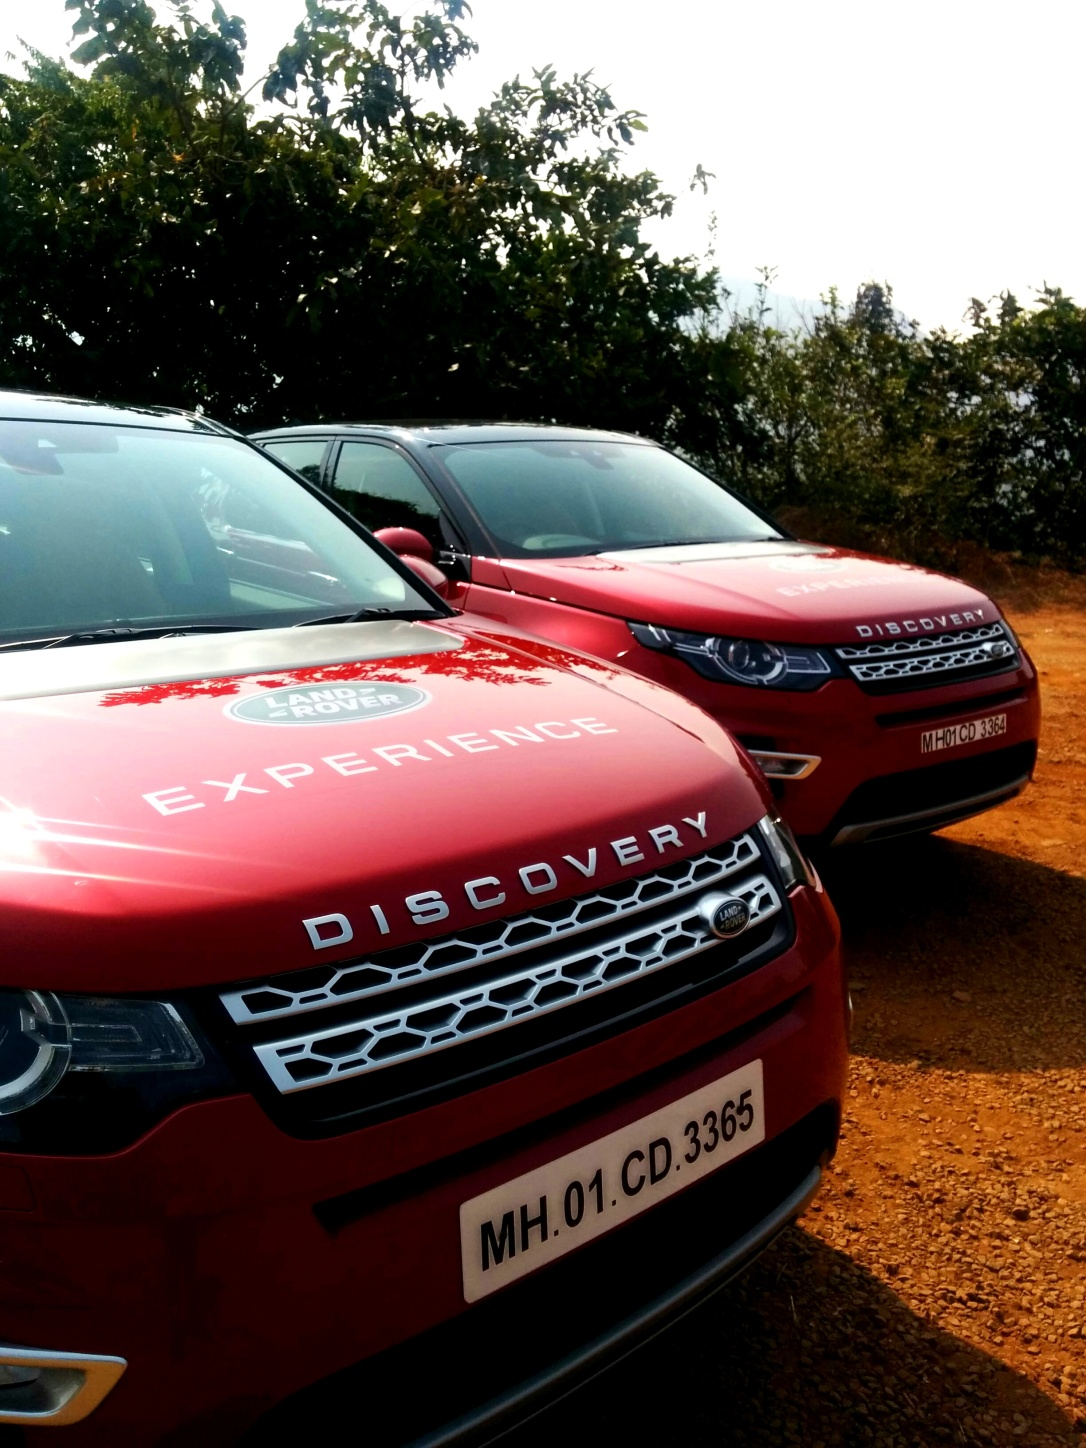 The Land Rover Discovery